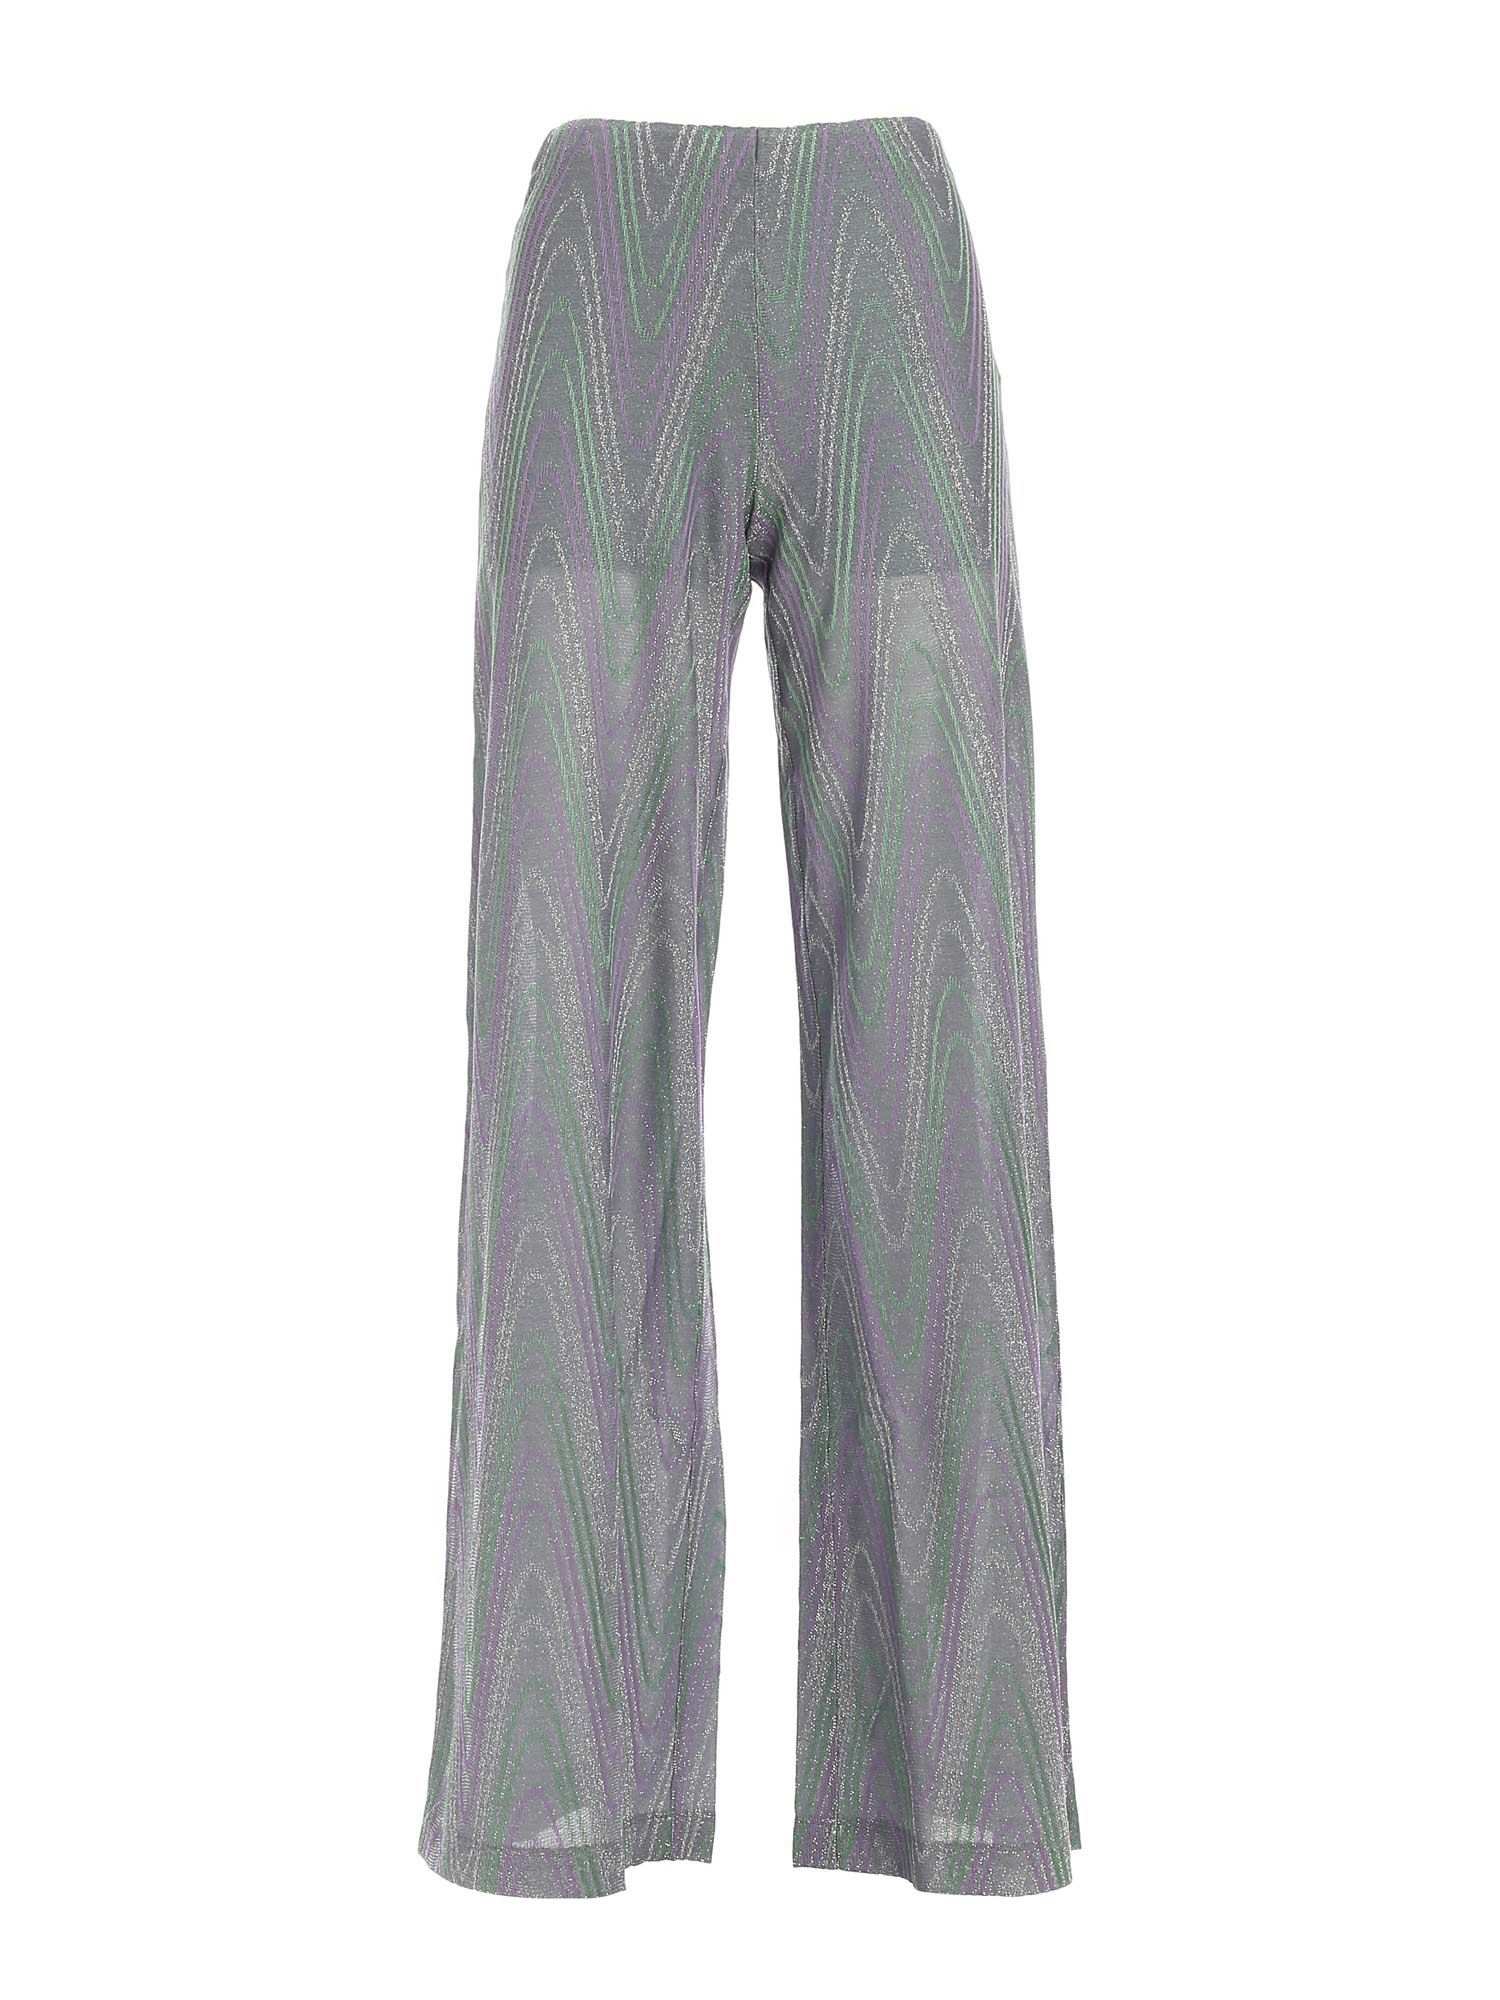 M Missoni Cottons LAM KNITTED PANTS IN GREEN AND PURPLE